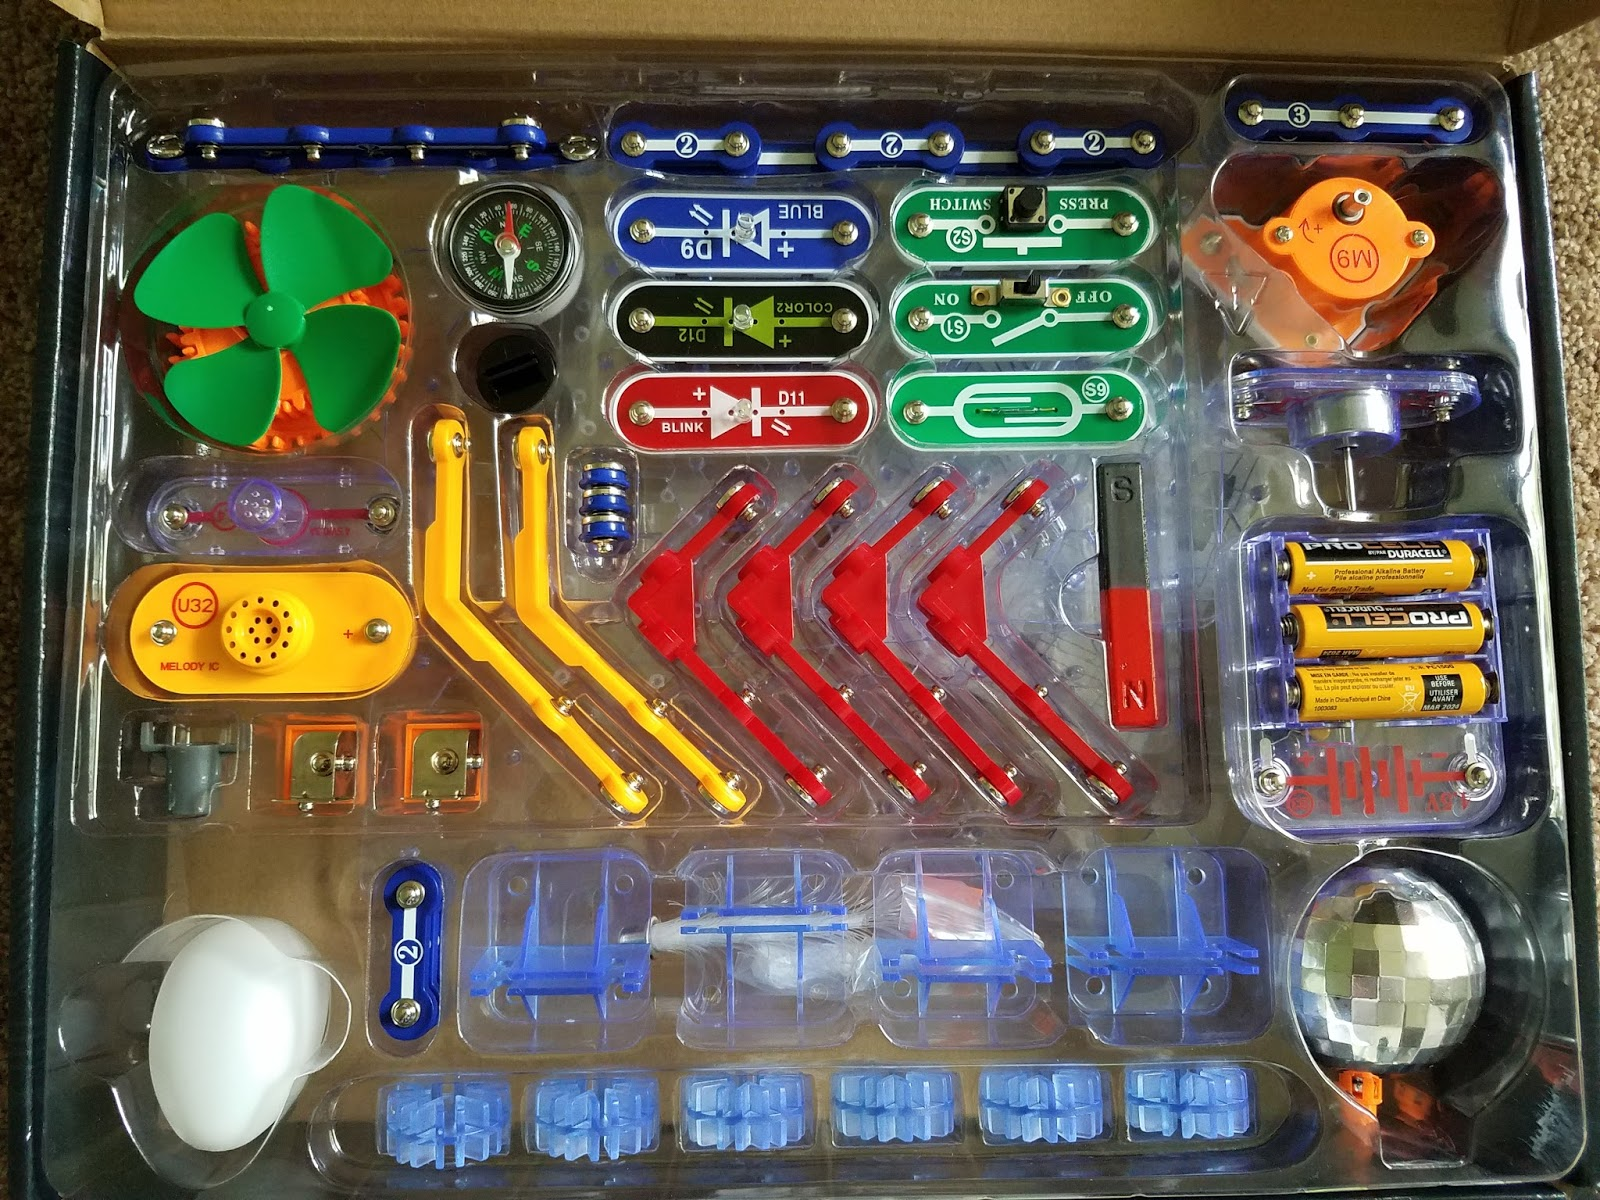 The Abcd Diaries Elenco Snap Circuits 3d Meg Kit Stem Learning Fun This Has Several Of Same Base Pieces As Other Sets But Adds Tons New Component Parts For Even More Awesome Experiments